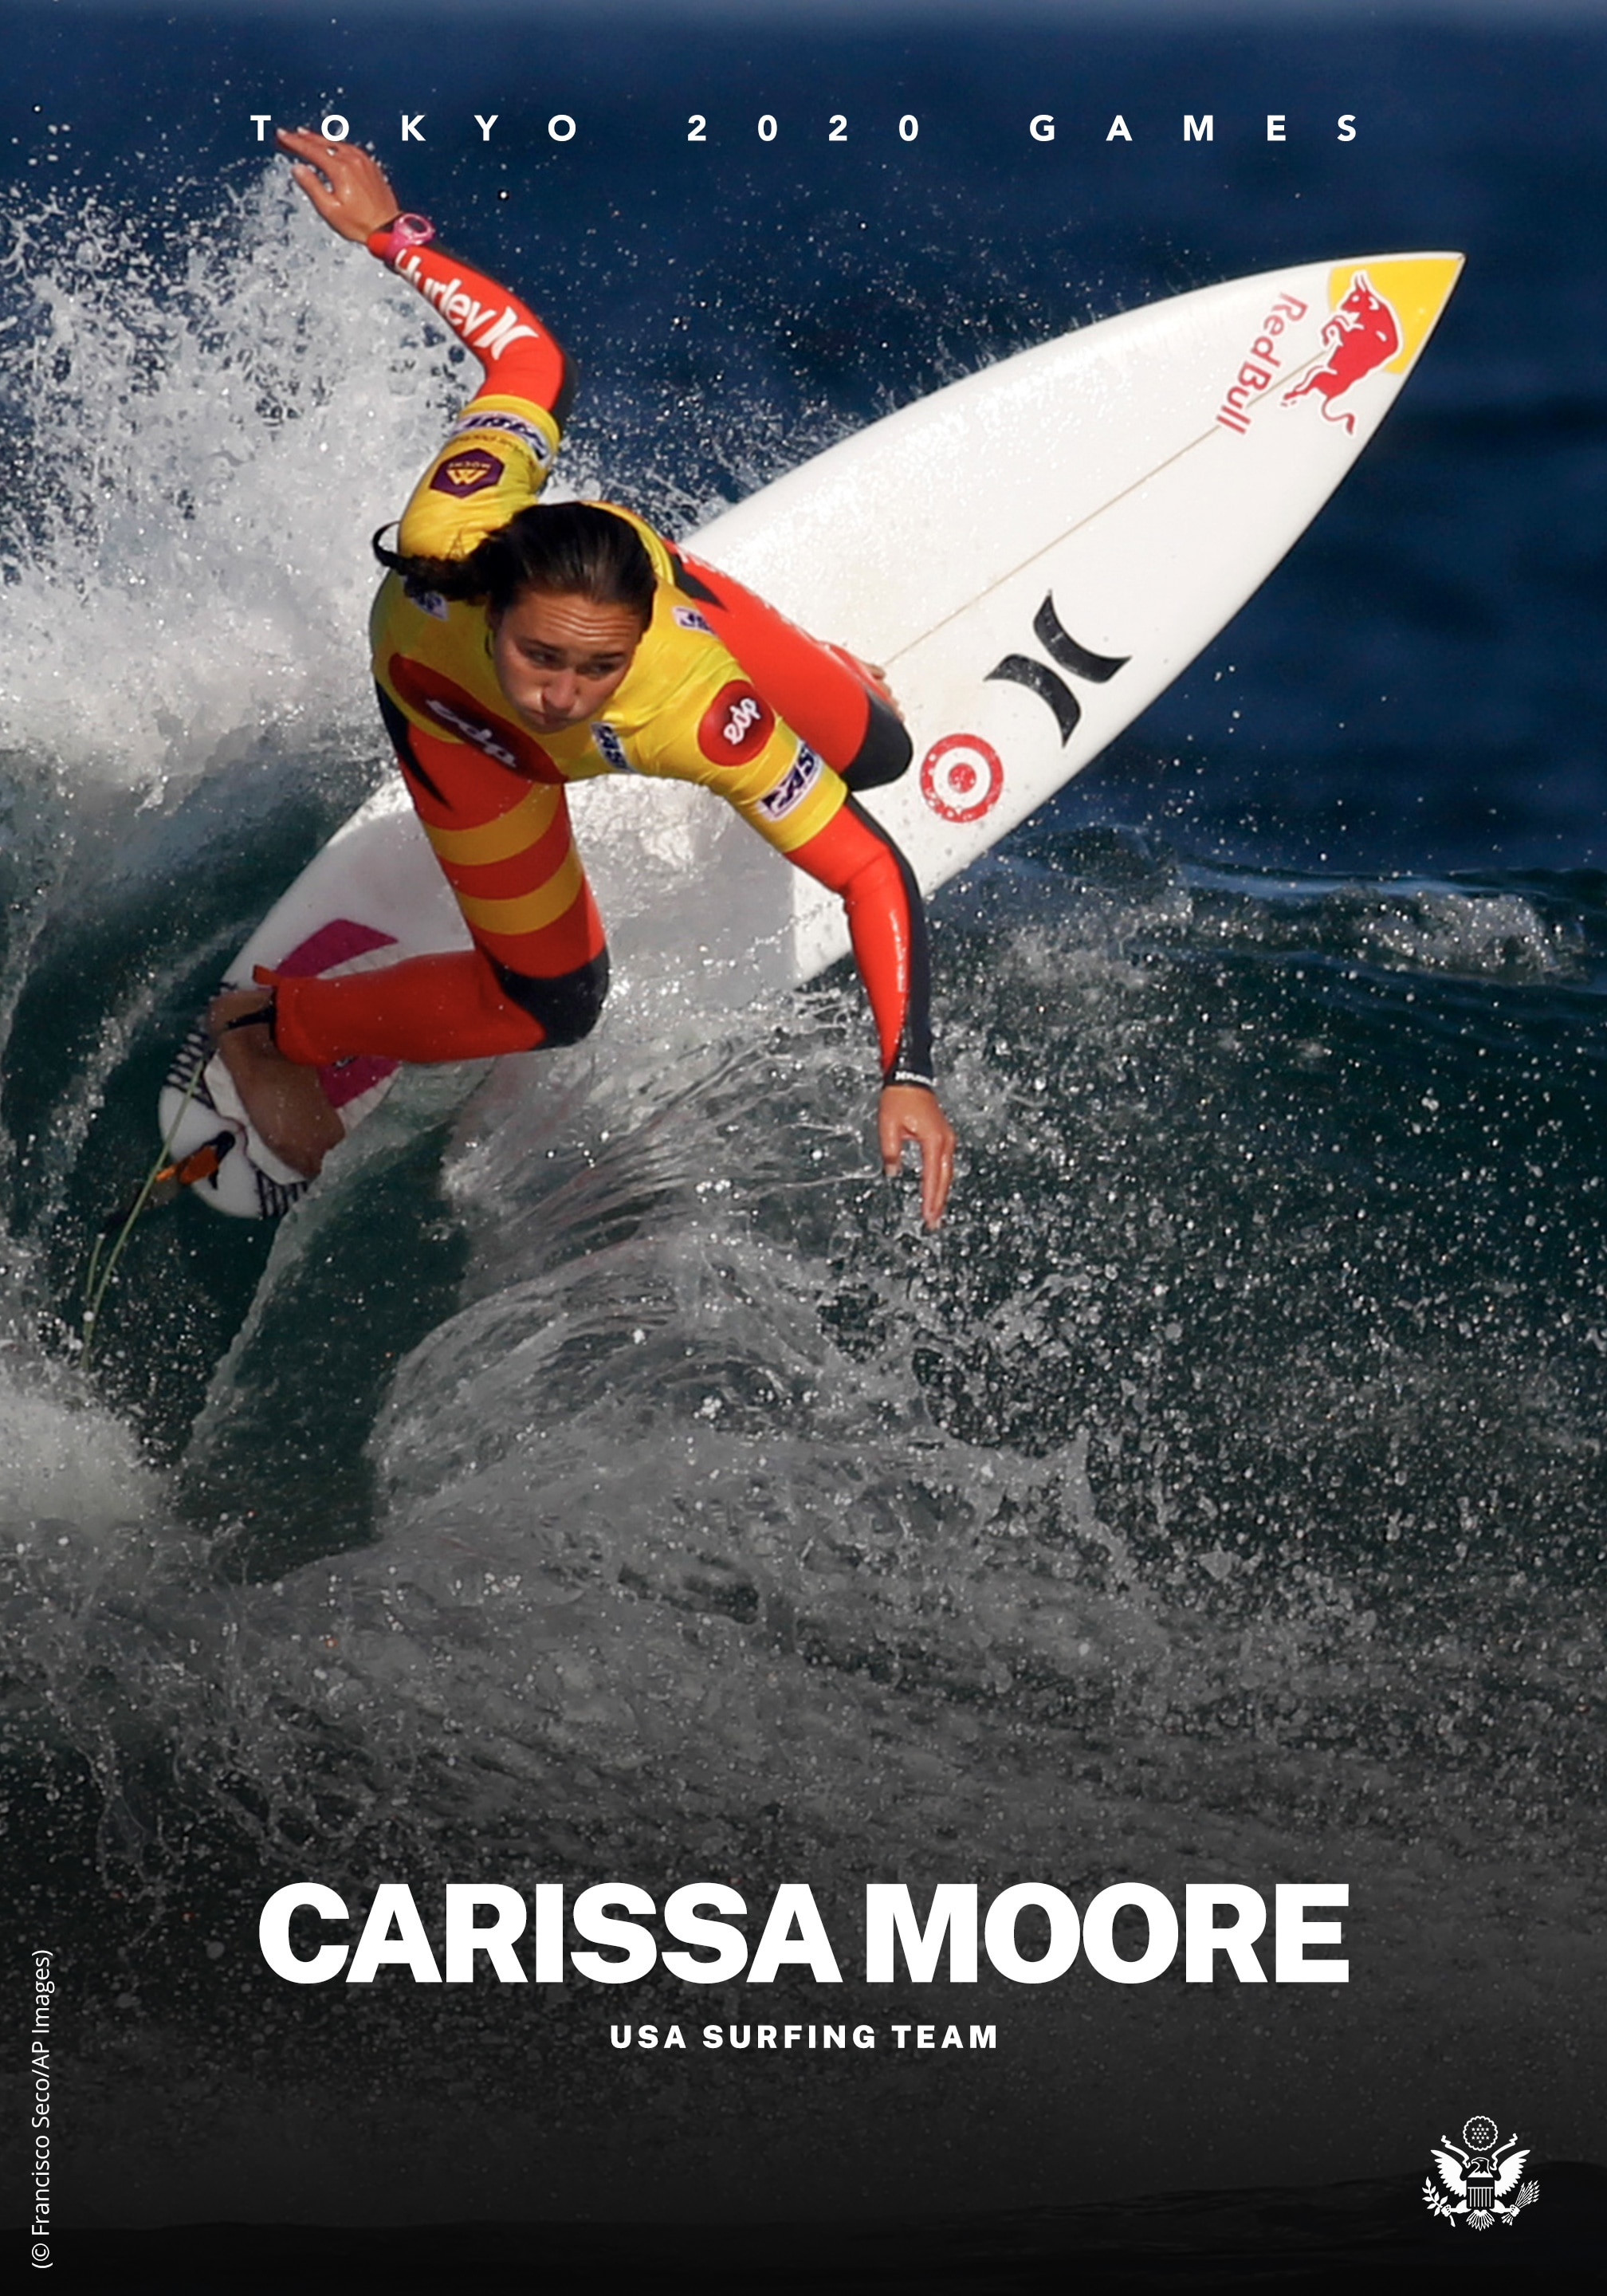 Carissa Moore riding wave on surfboard (© Francisco Seco/AP Images)